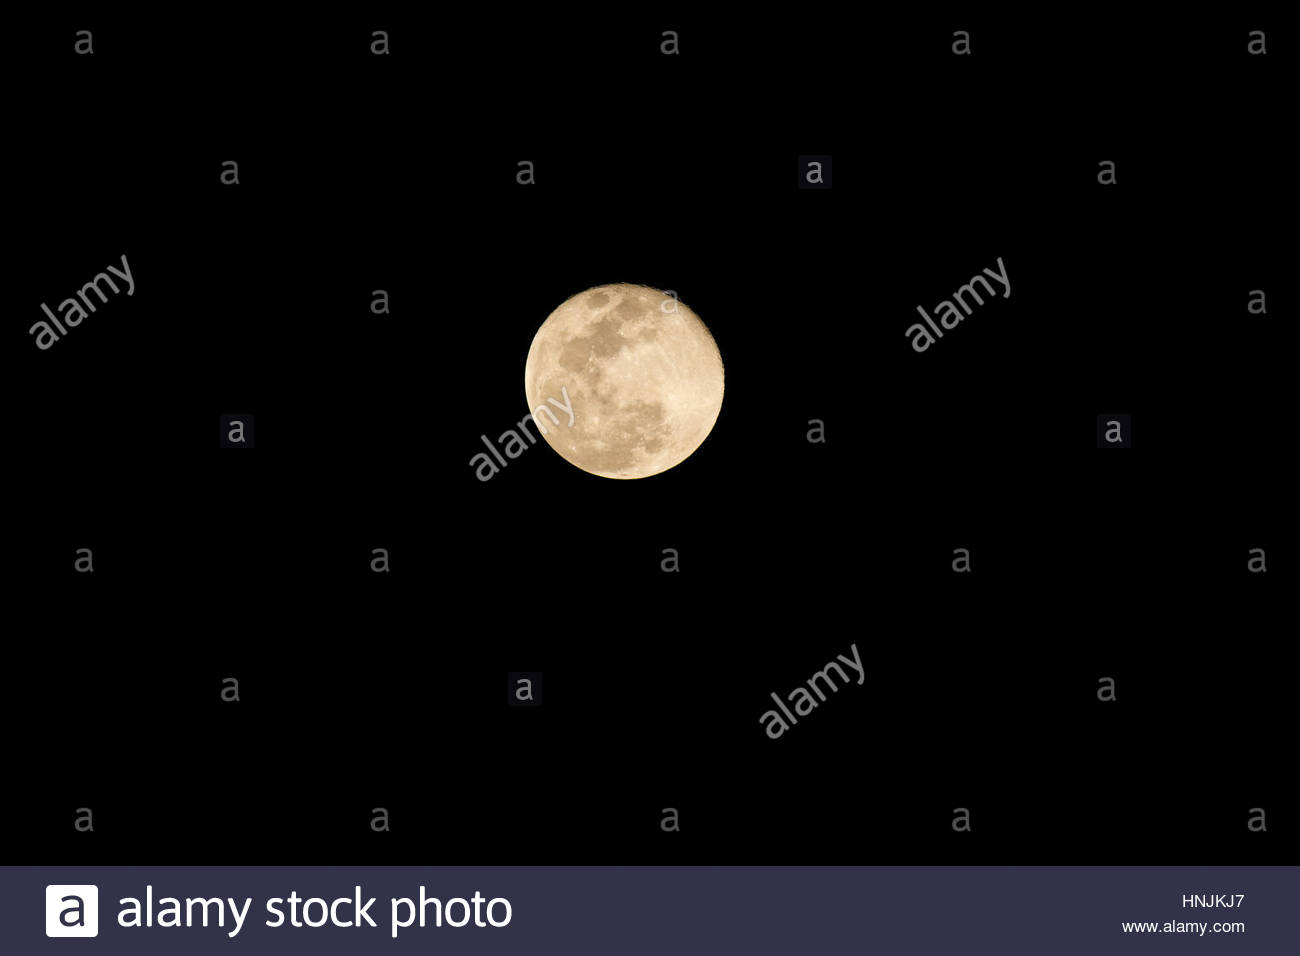 Full moon, at the equator. - Stock Image